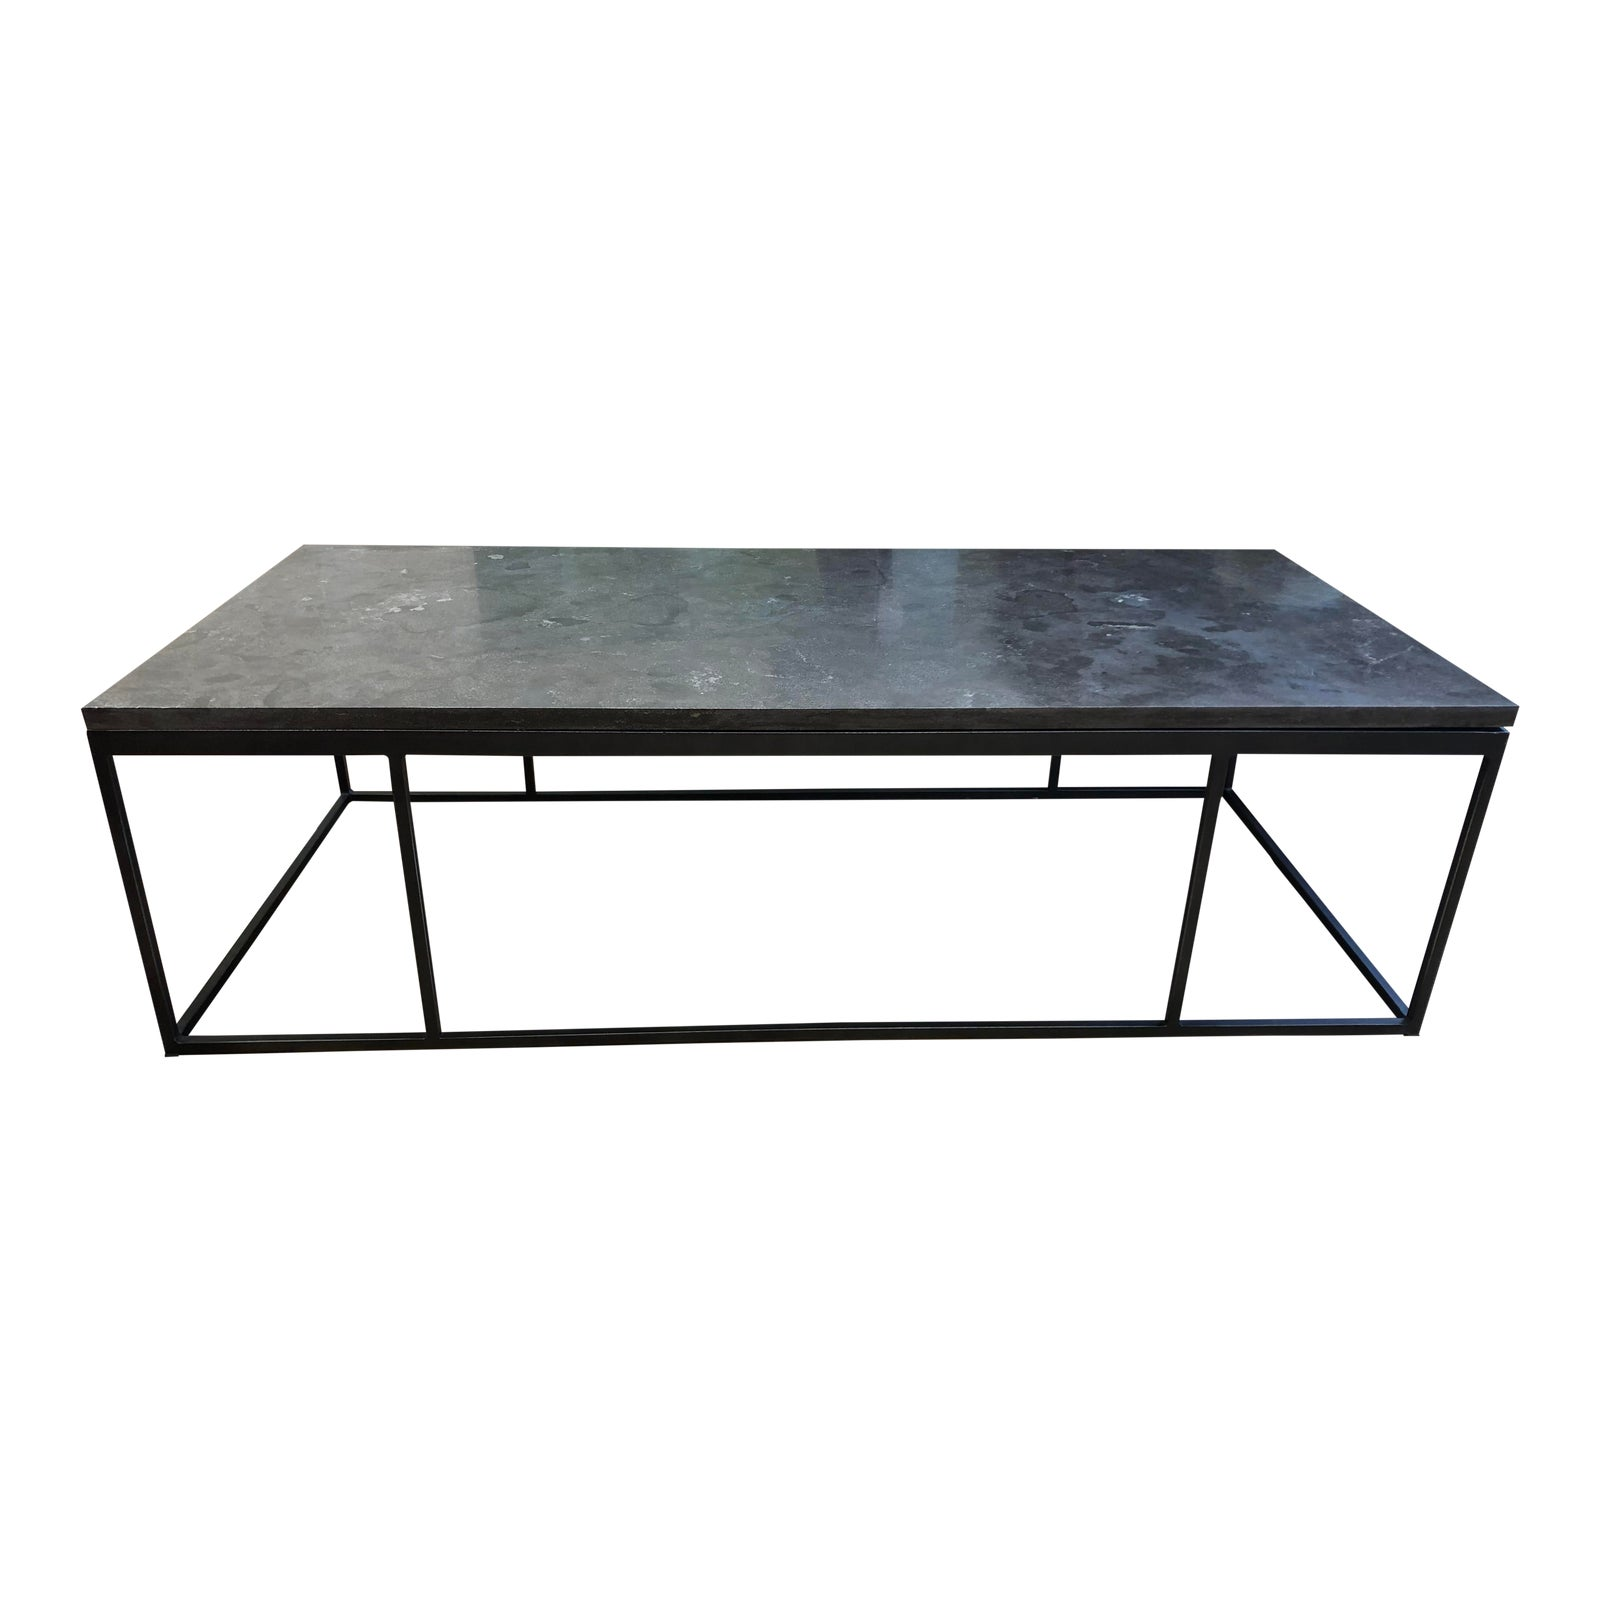 Surprising Four Hands Harlow Coffee Table Original Price 960 Caraccident5 Cool Chair Designs And Ideas Caraccident5Info